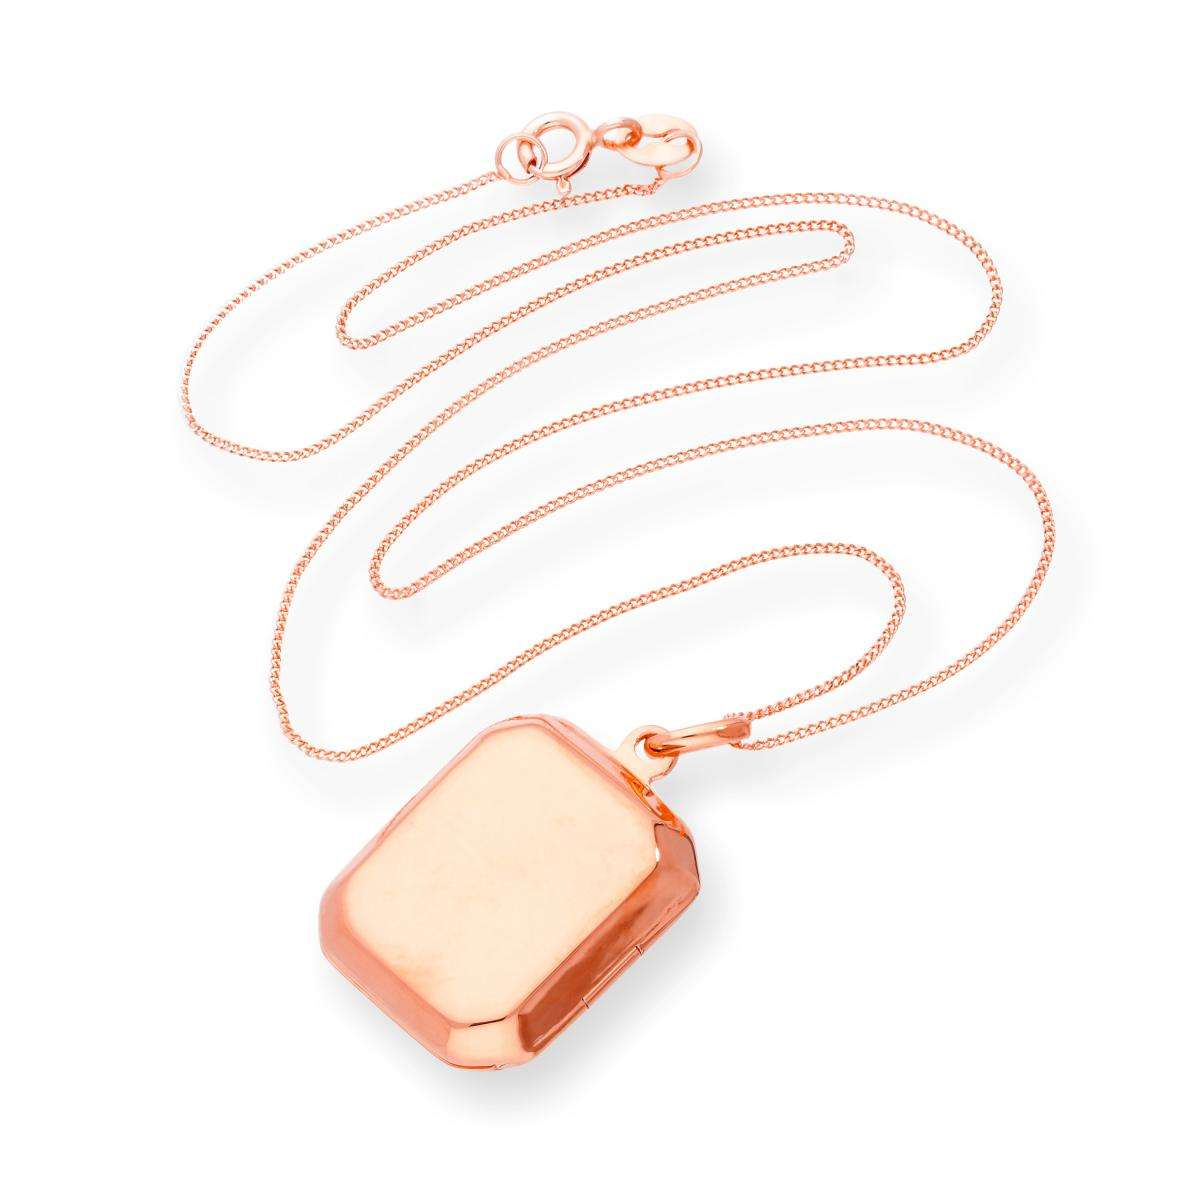 Alterative image for Rose Gold Plated Sterling Silver Engravable Octagonal Locket 16 - 22 Inches